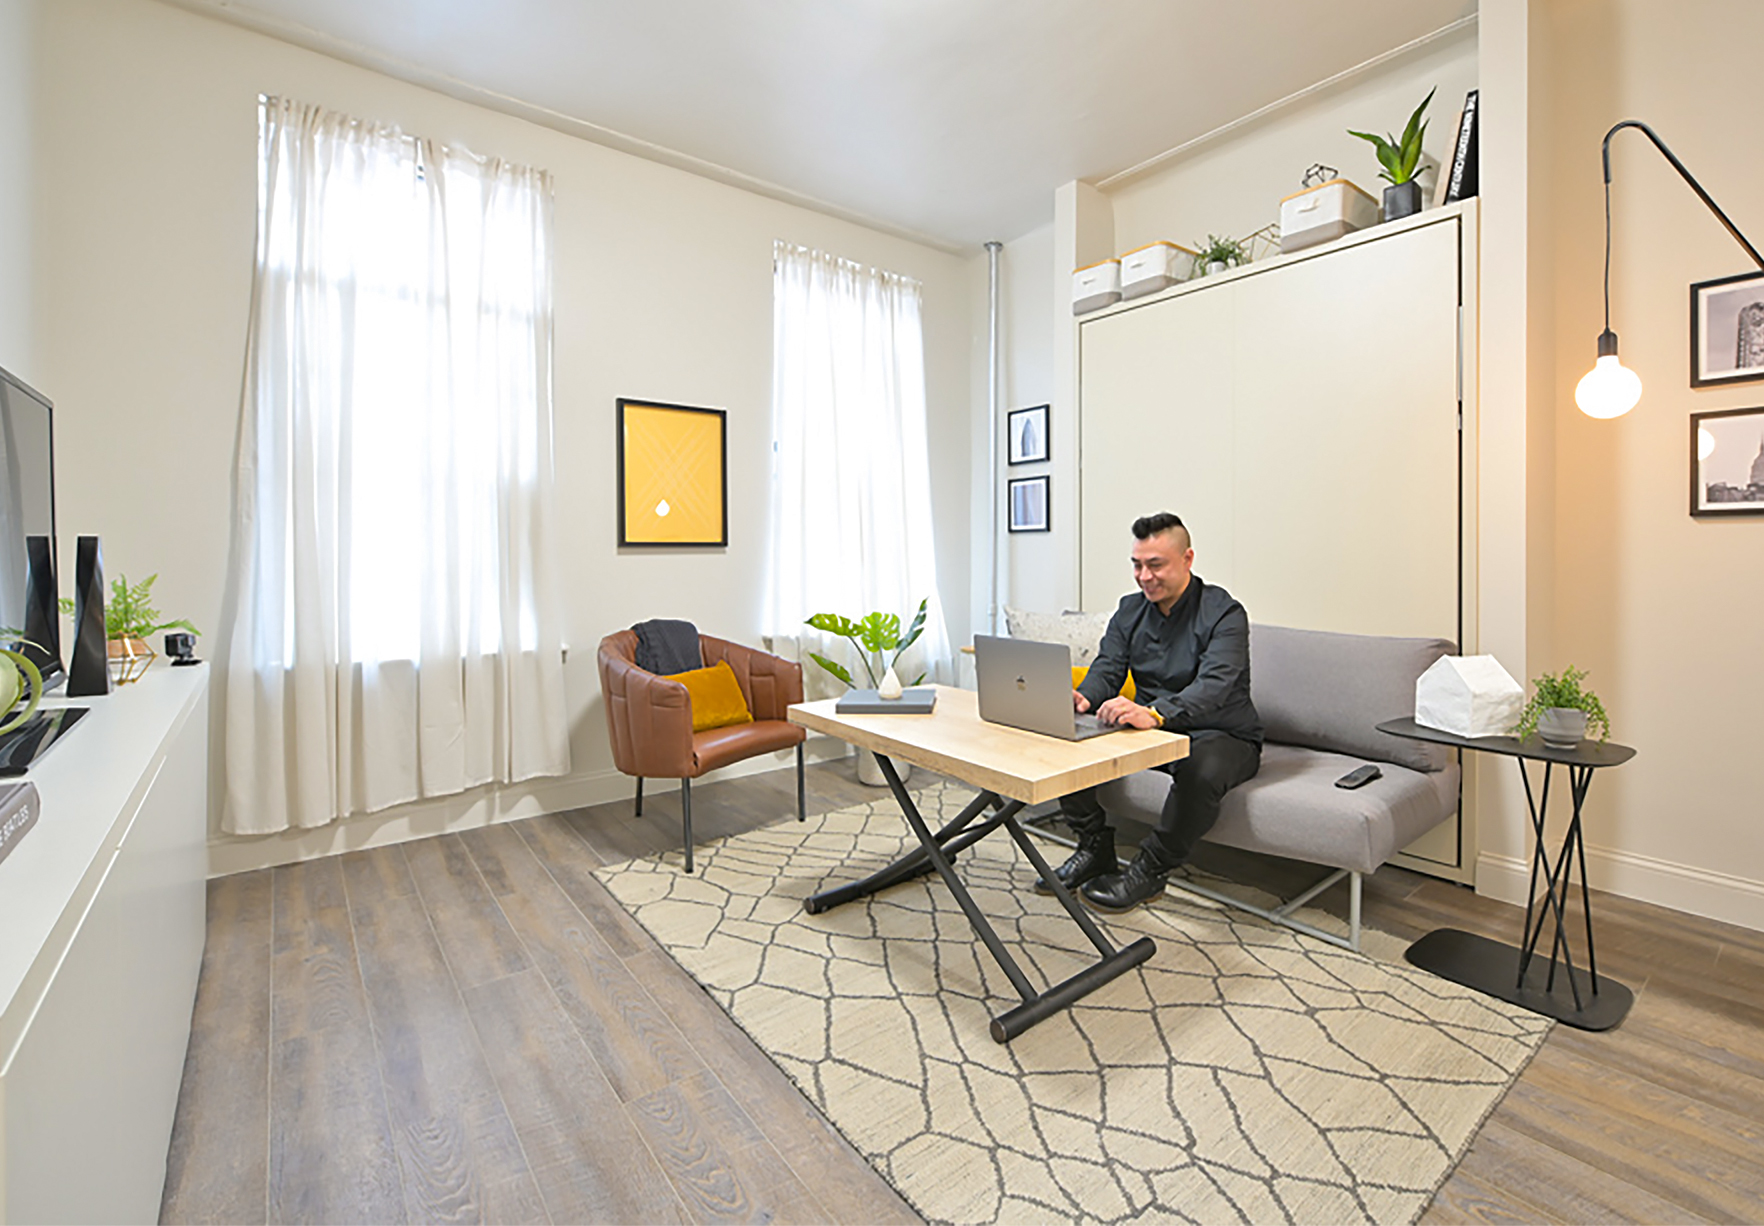 Using a multi-functional sofa wall bed and height-adjusting coffee table, this 300sqft NYC studio transforms from bedroom to living room to home office in seconds.